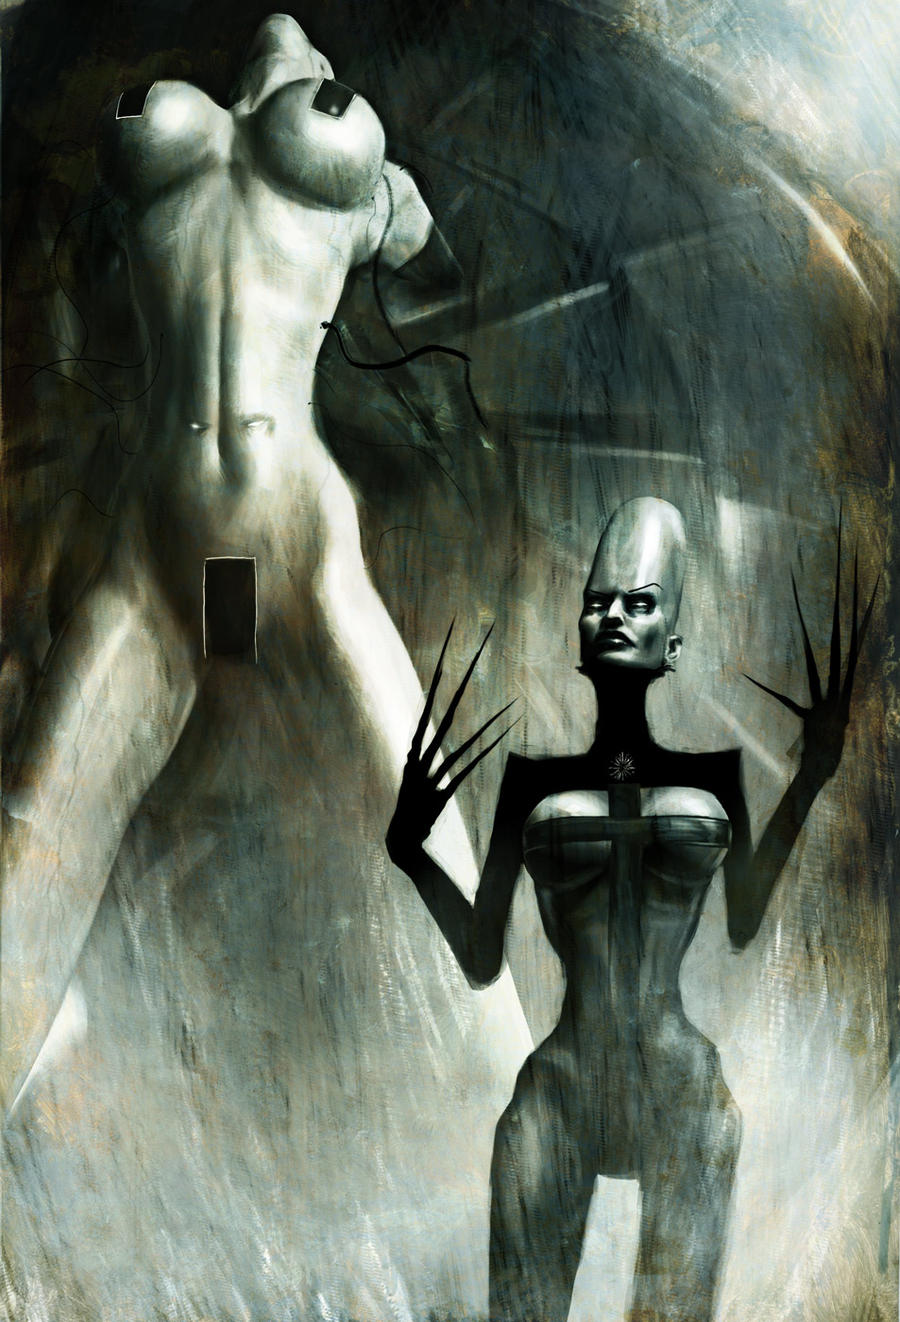 The Shepherd and The Defense mechanism by menton3